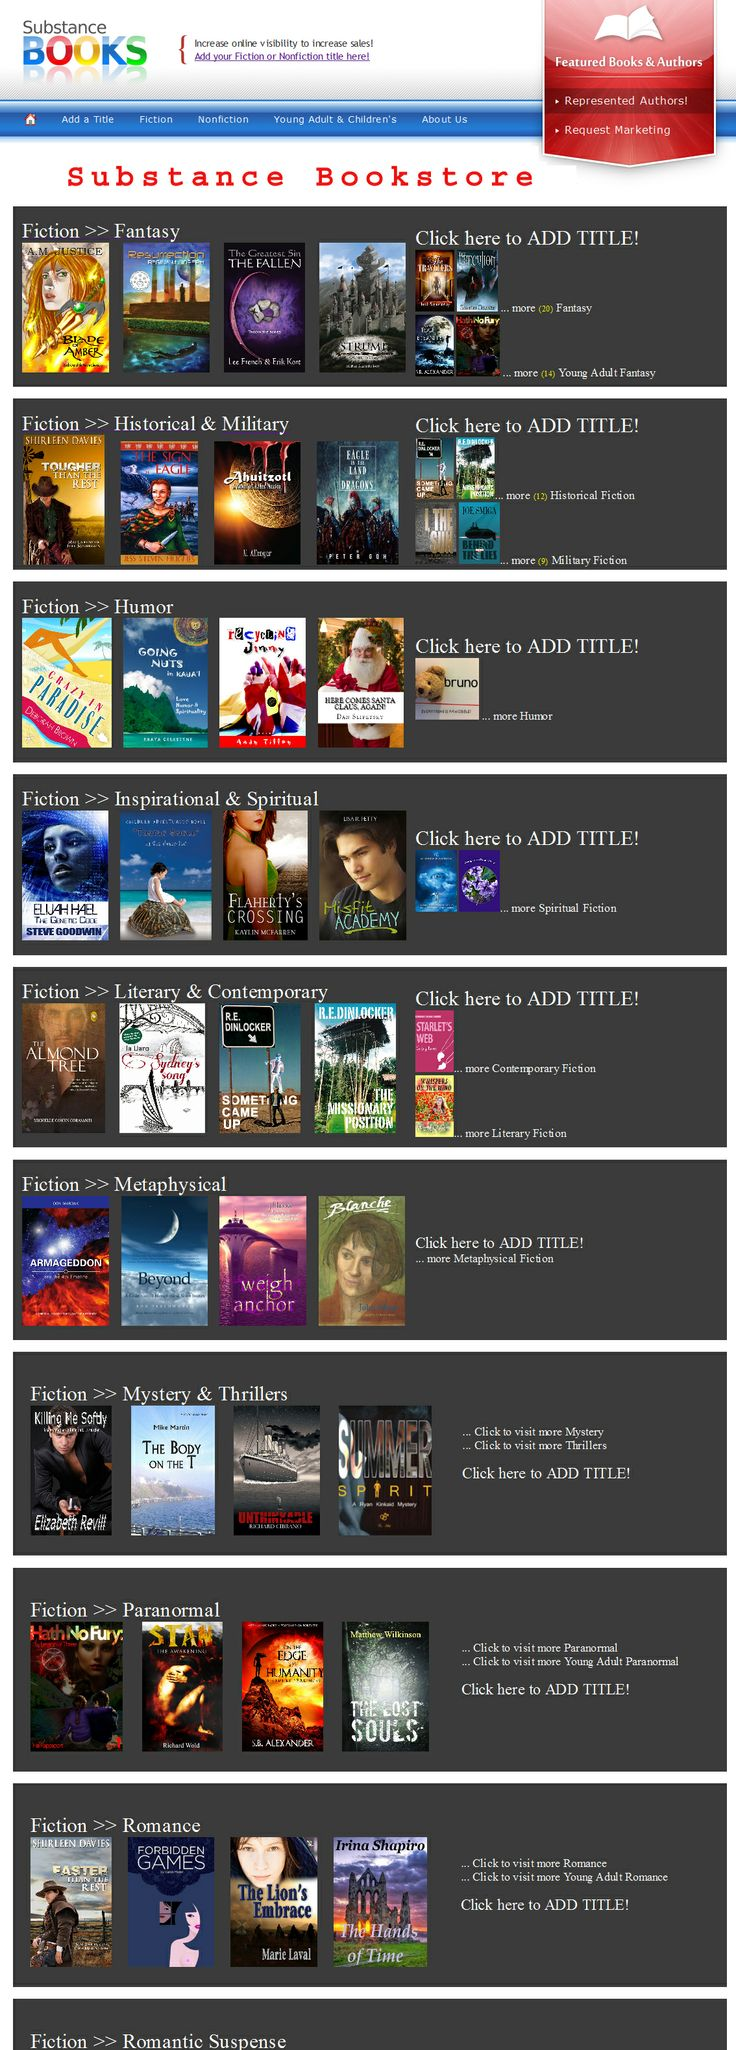 Stop by to visit the Substance Bookstore. http://www.onlinebookpublicity.com/books.html